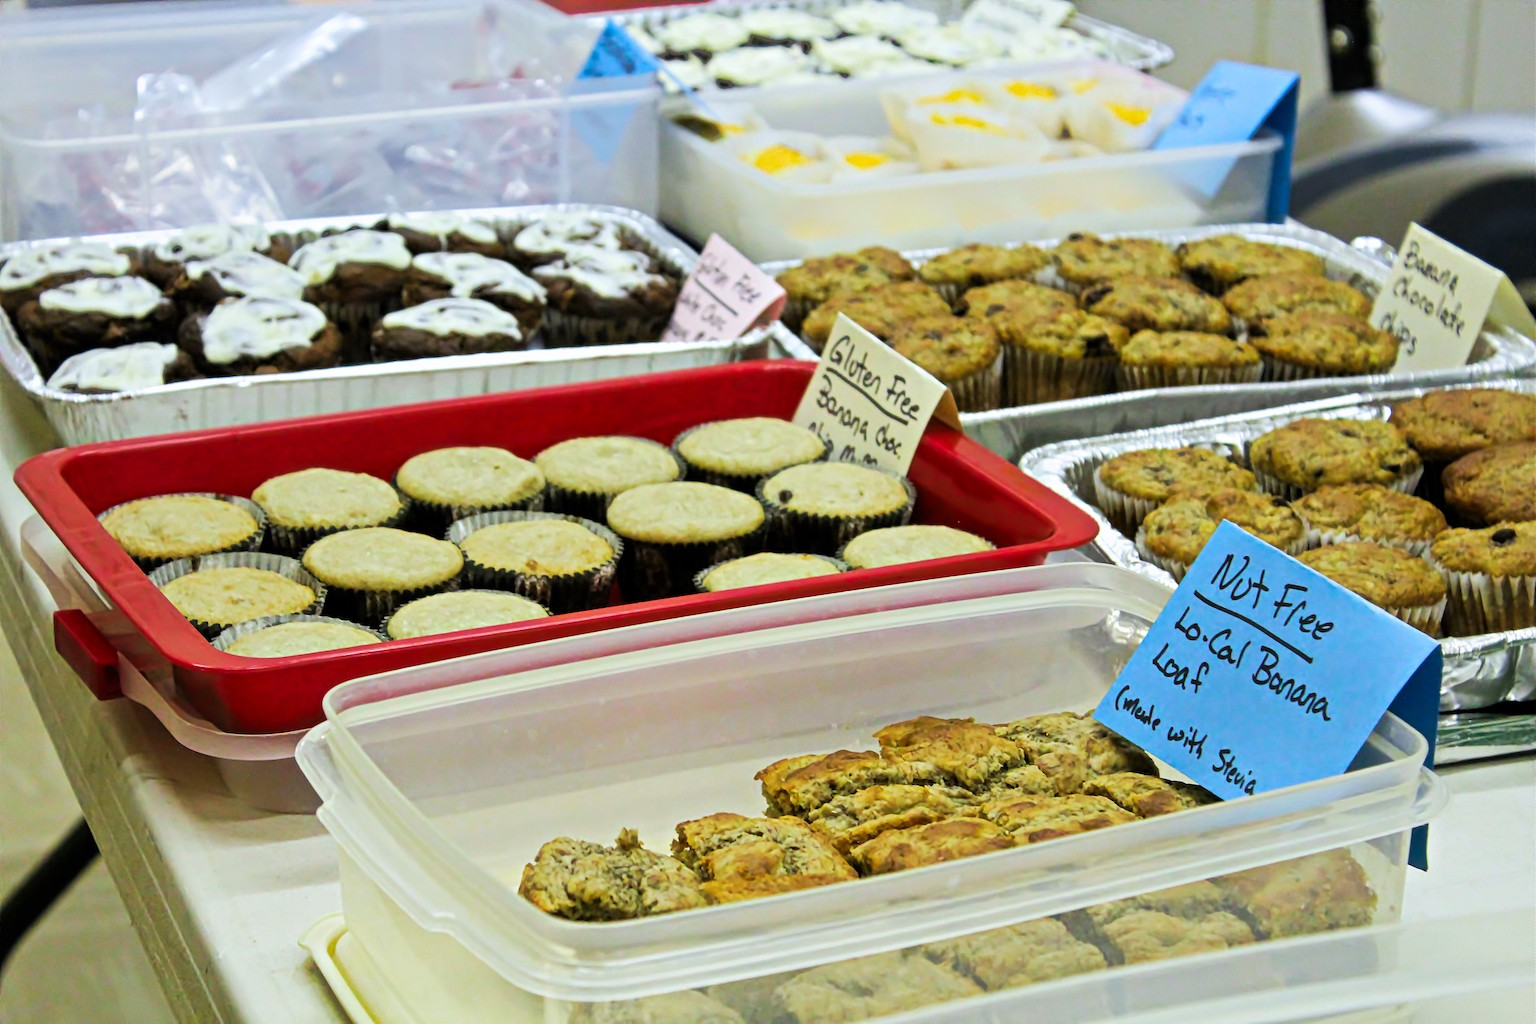 Gluten and nut free items at a bake sale